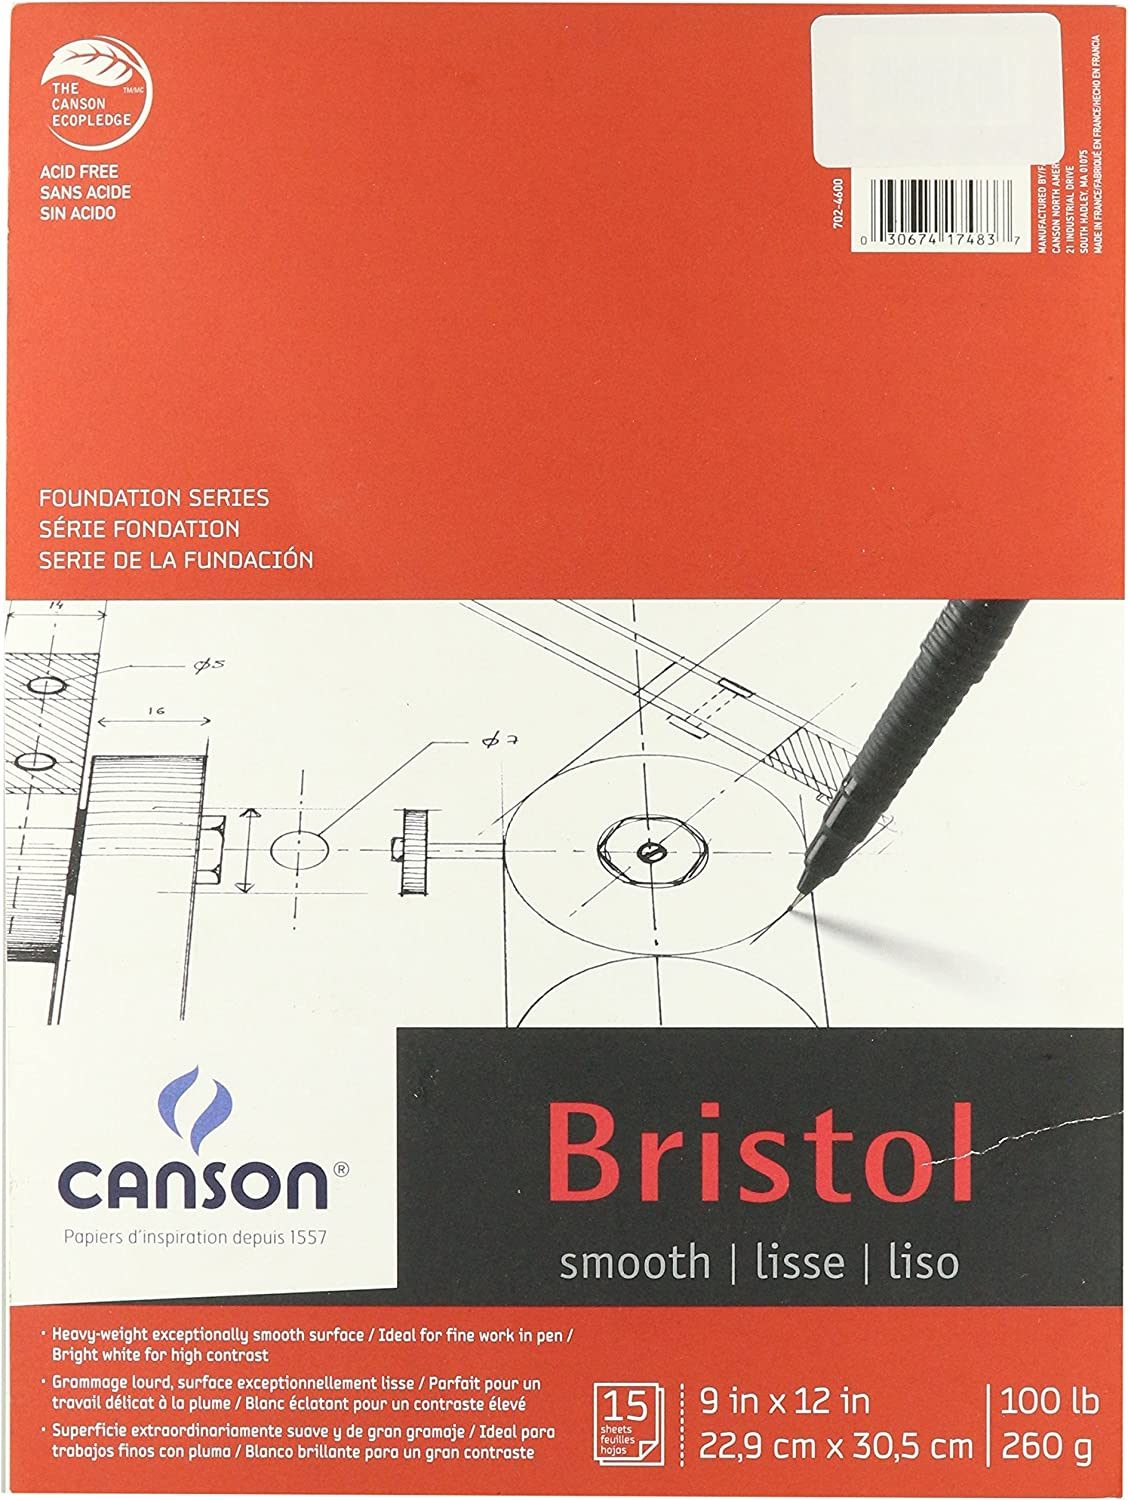 Canson Foundation Series 9 x 12 Inches Foundation Bristol Sheet Pad C702-4600